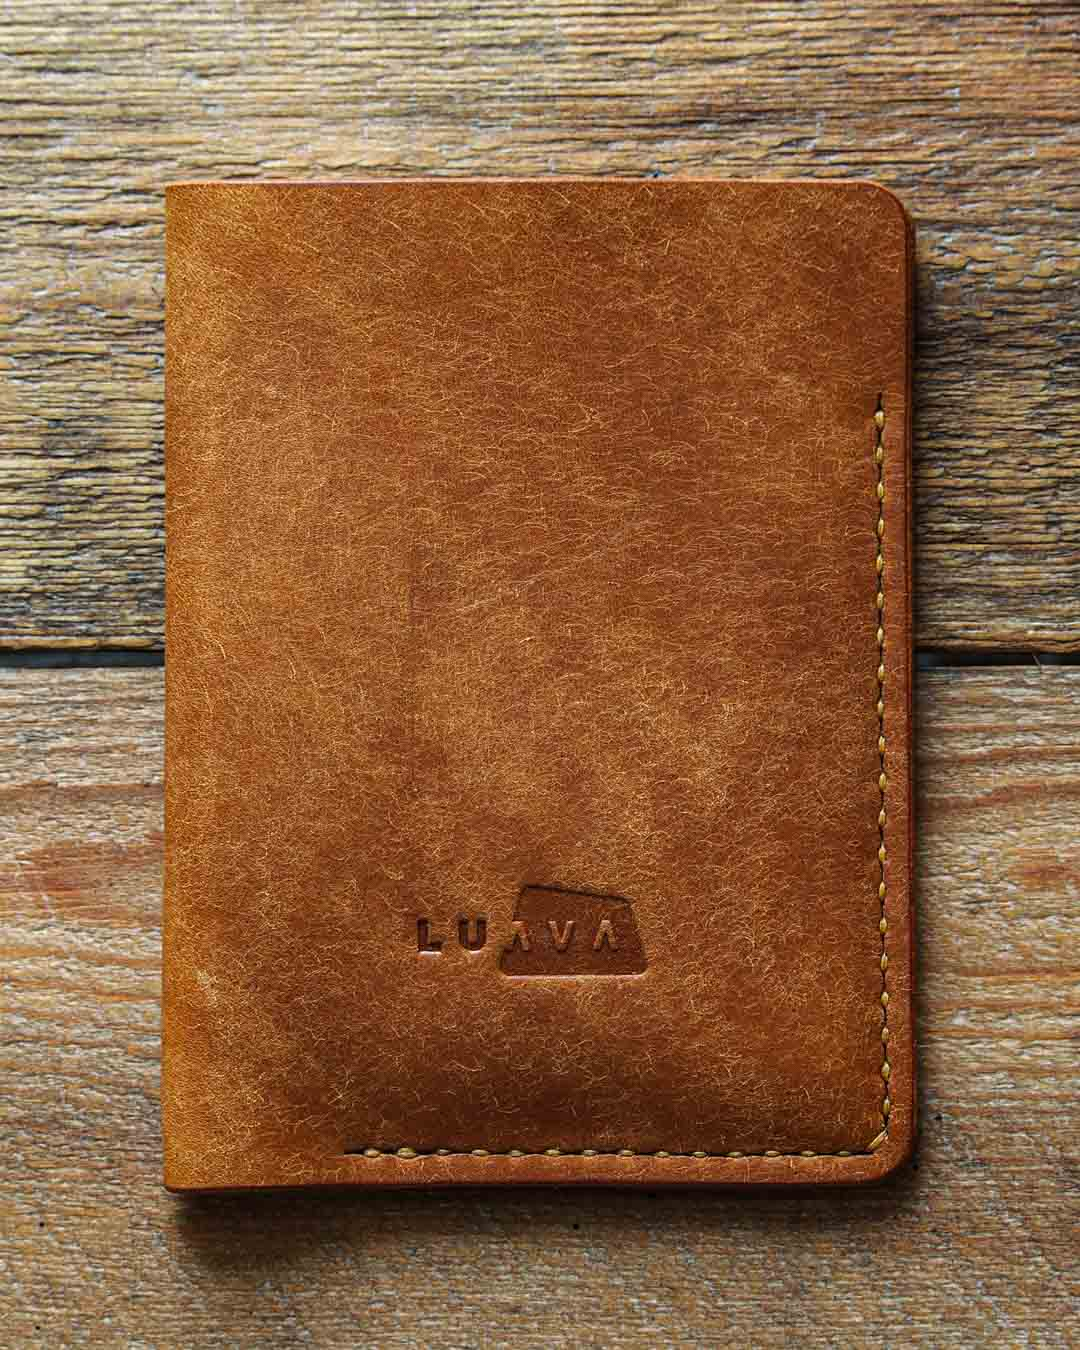 Luava handcrafted leather passport cover pueblo cognac